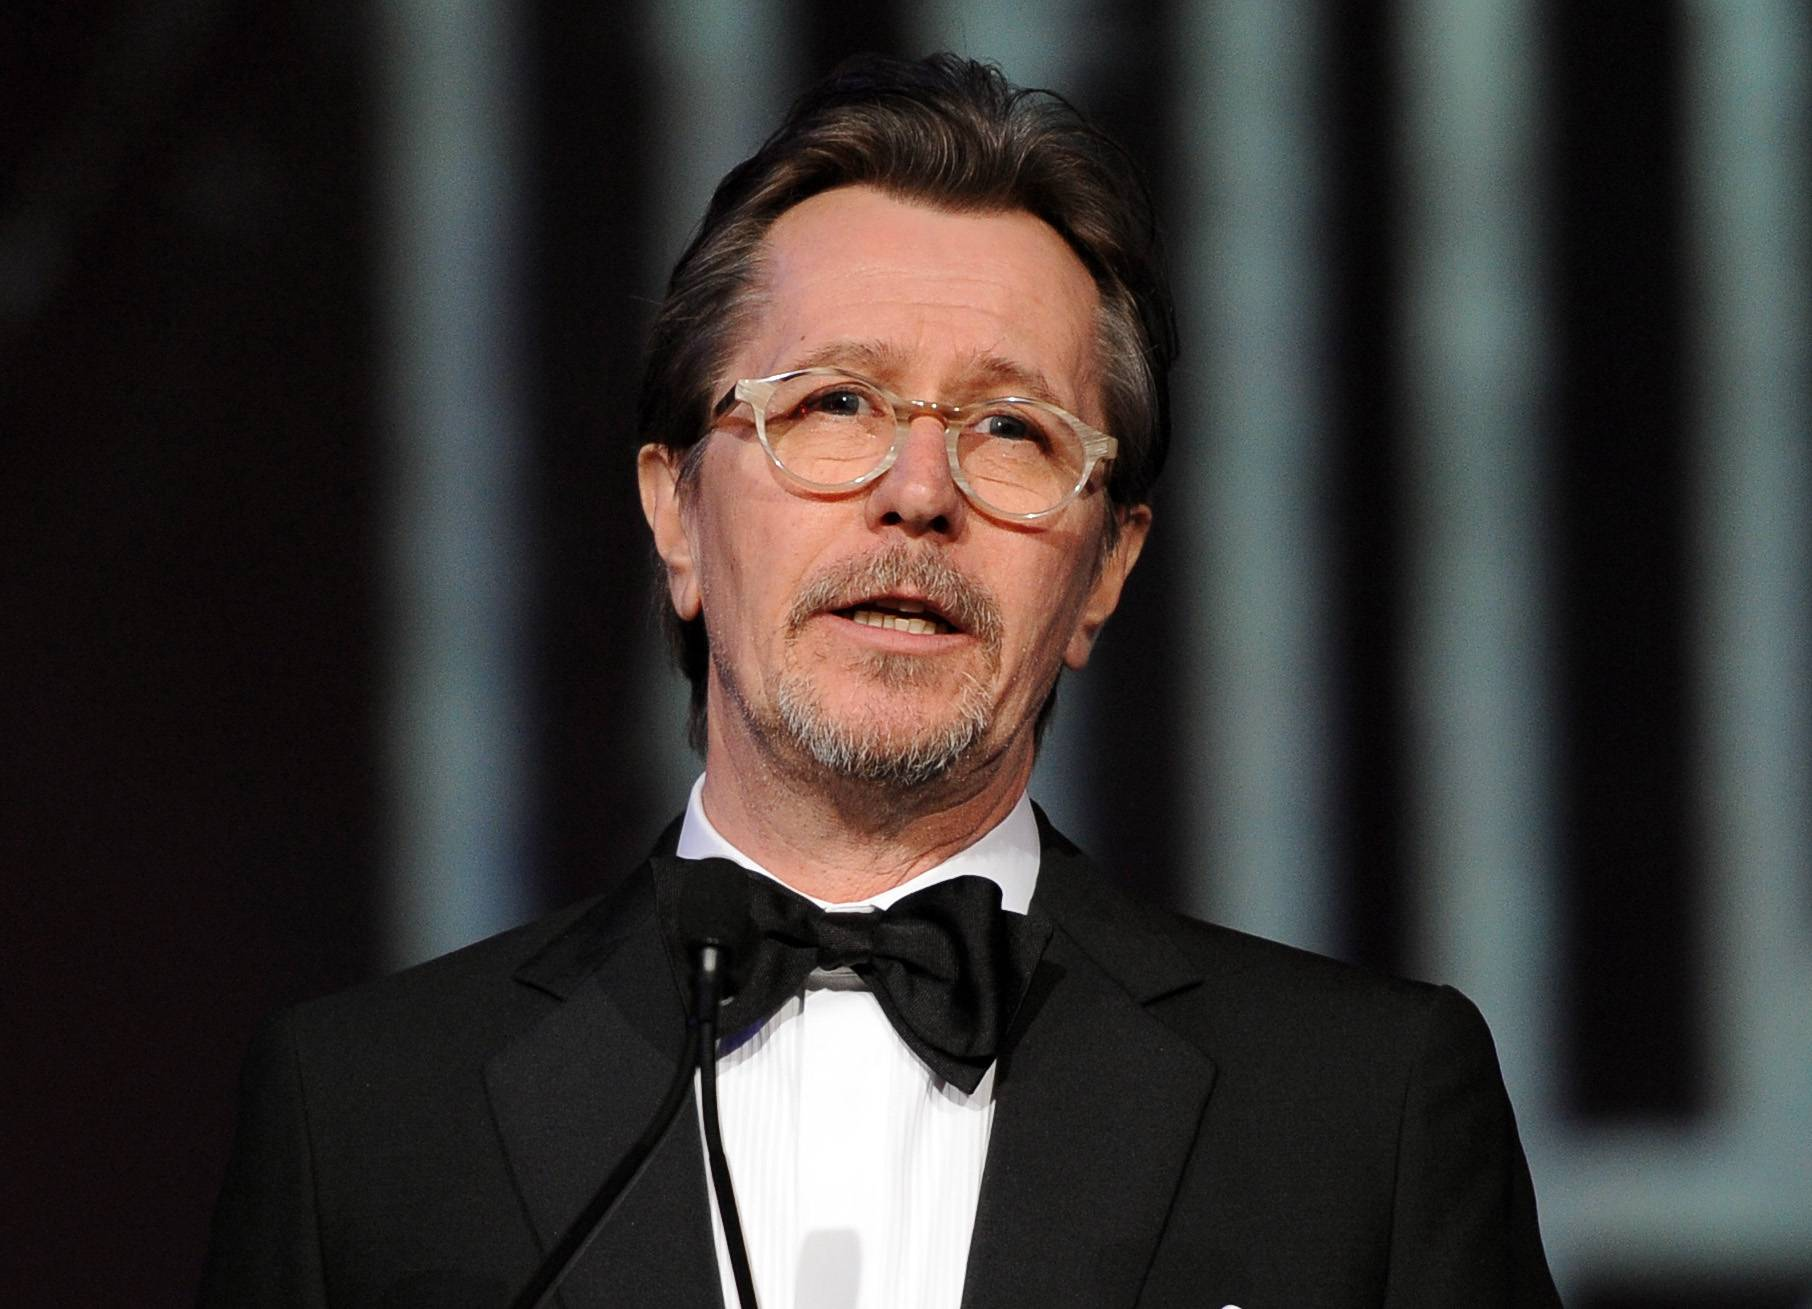 Gary Oldman has apologized for defending fellow actors Mel Gibson and Alec Baldwin from critics of their controversial remarks about Jews and gays.